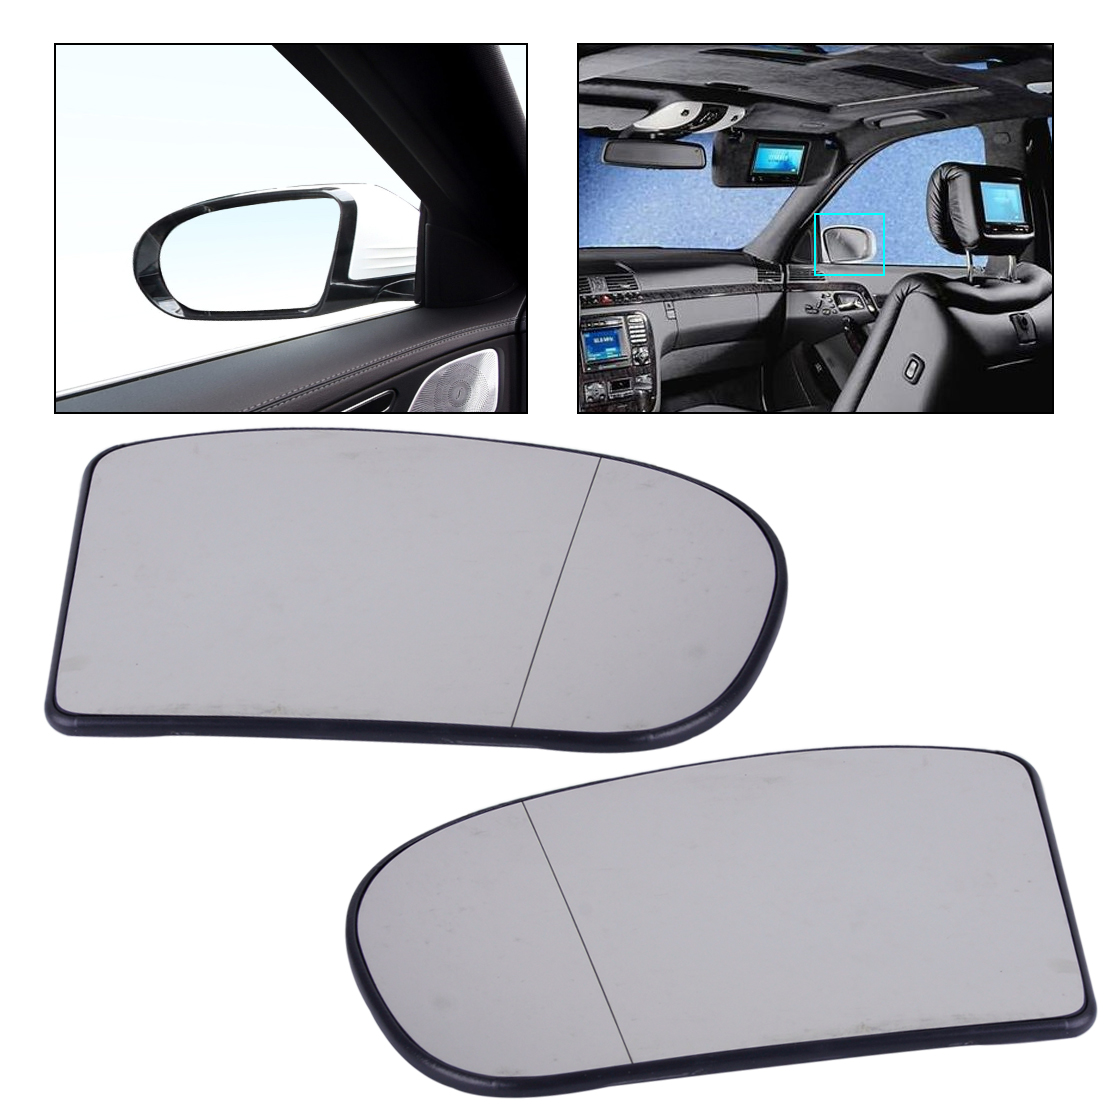 CITALL 2038100121 2038100221 Left + Right Heated Wide Angle Door Mirror Glass Fit For Mercedes E C Class W211 W203 E55 C240 C280